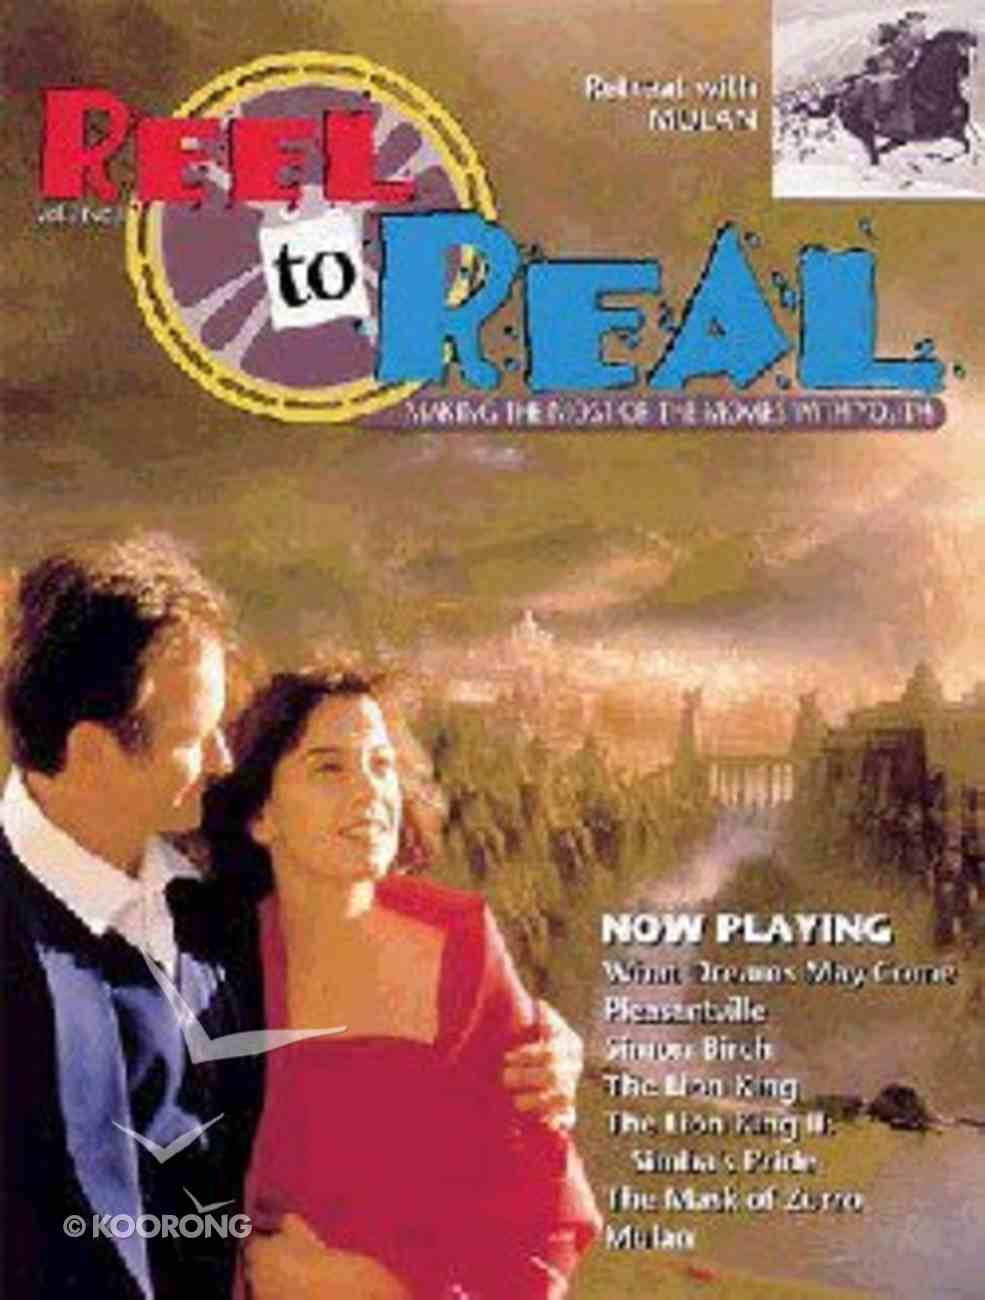 Reel to Real (Vol 3 #1) Paperback